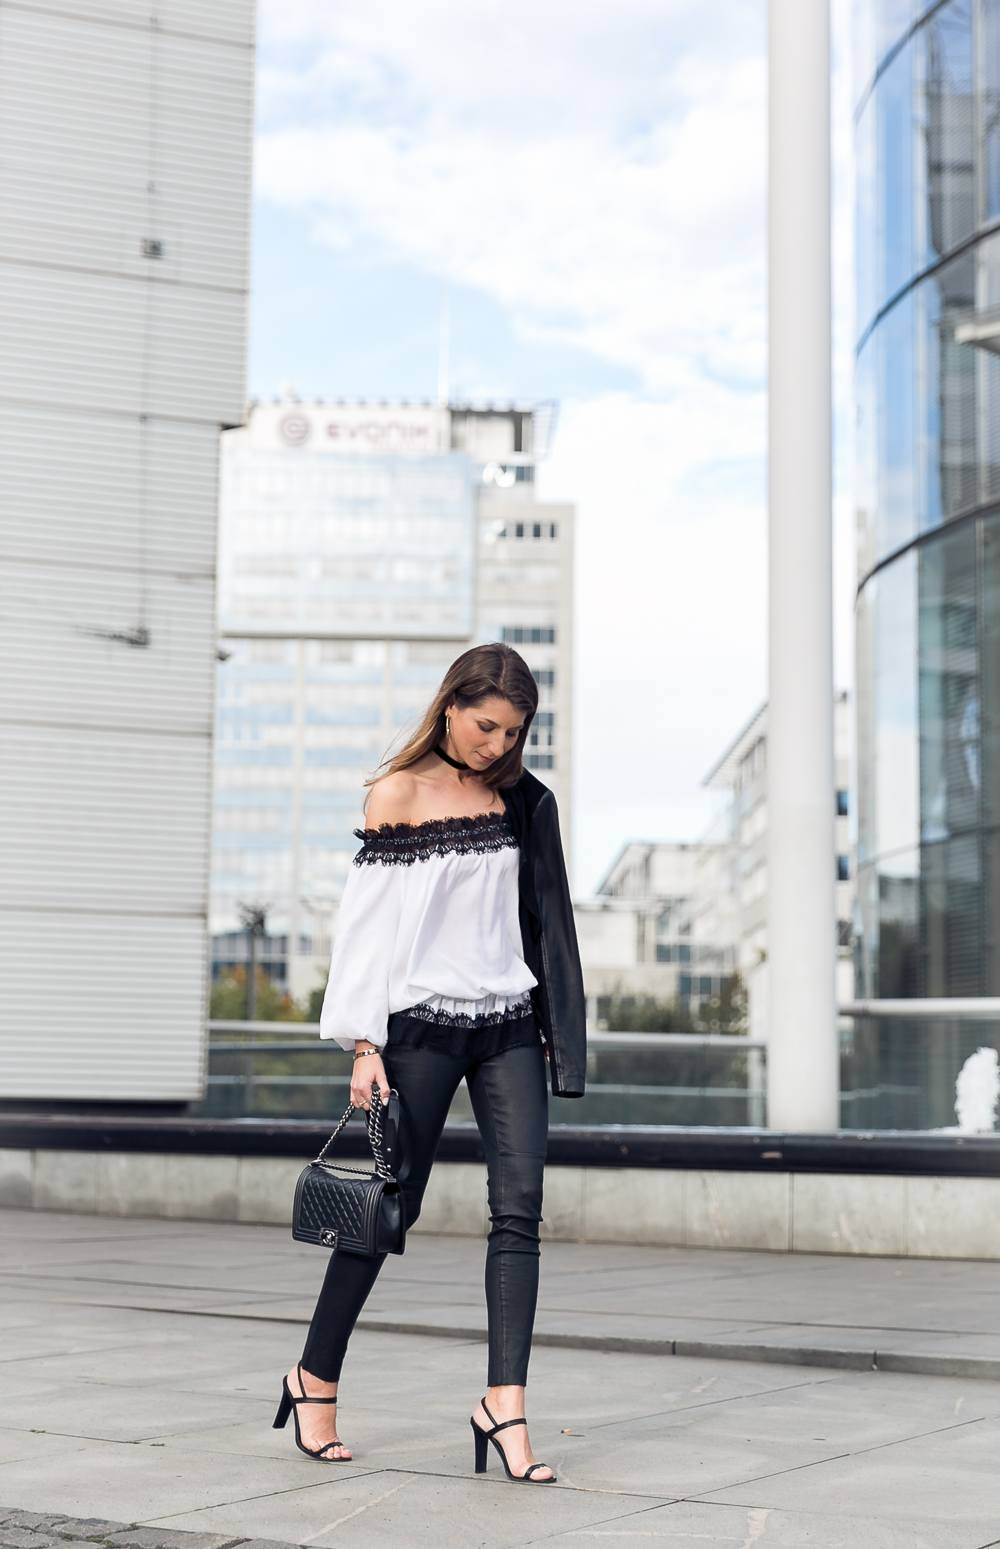 evening outfit off shoulder top white lace leather pants heels inspiration fashion blog essen ruhrgebiet